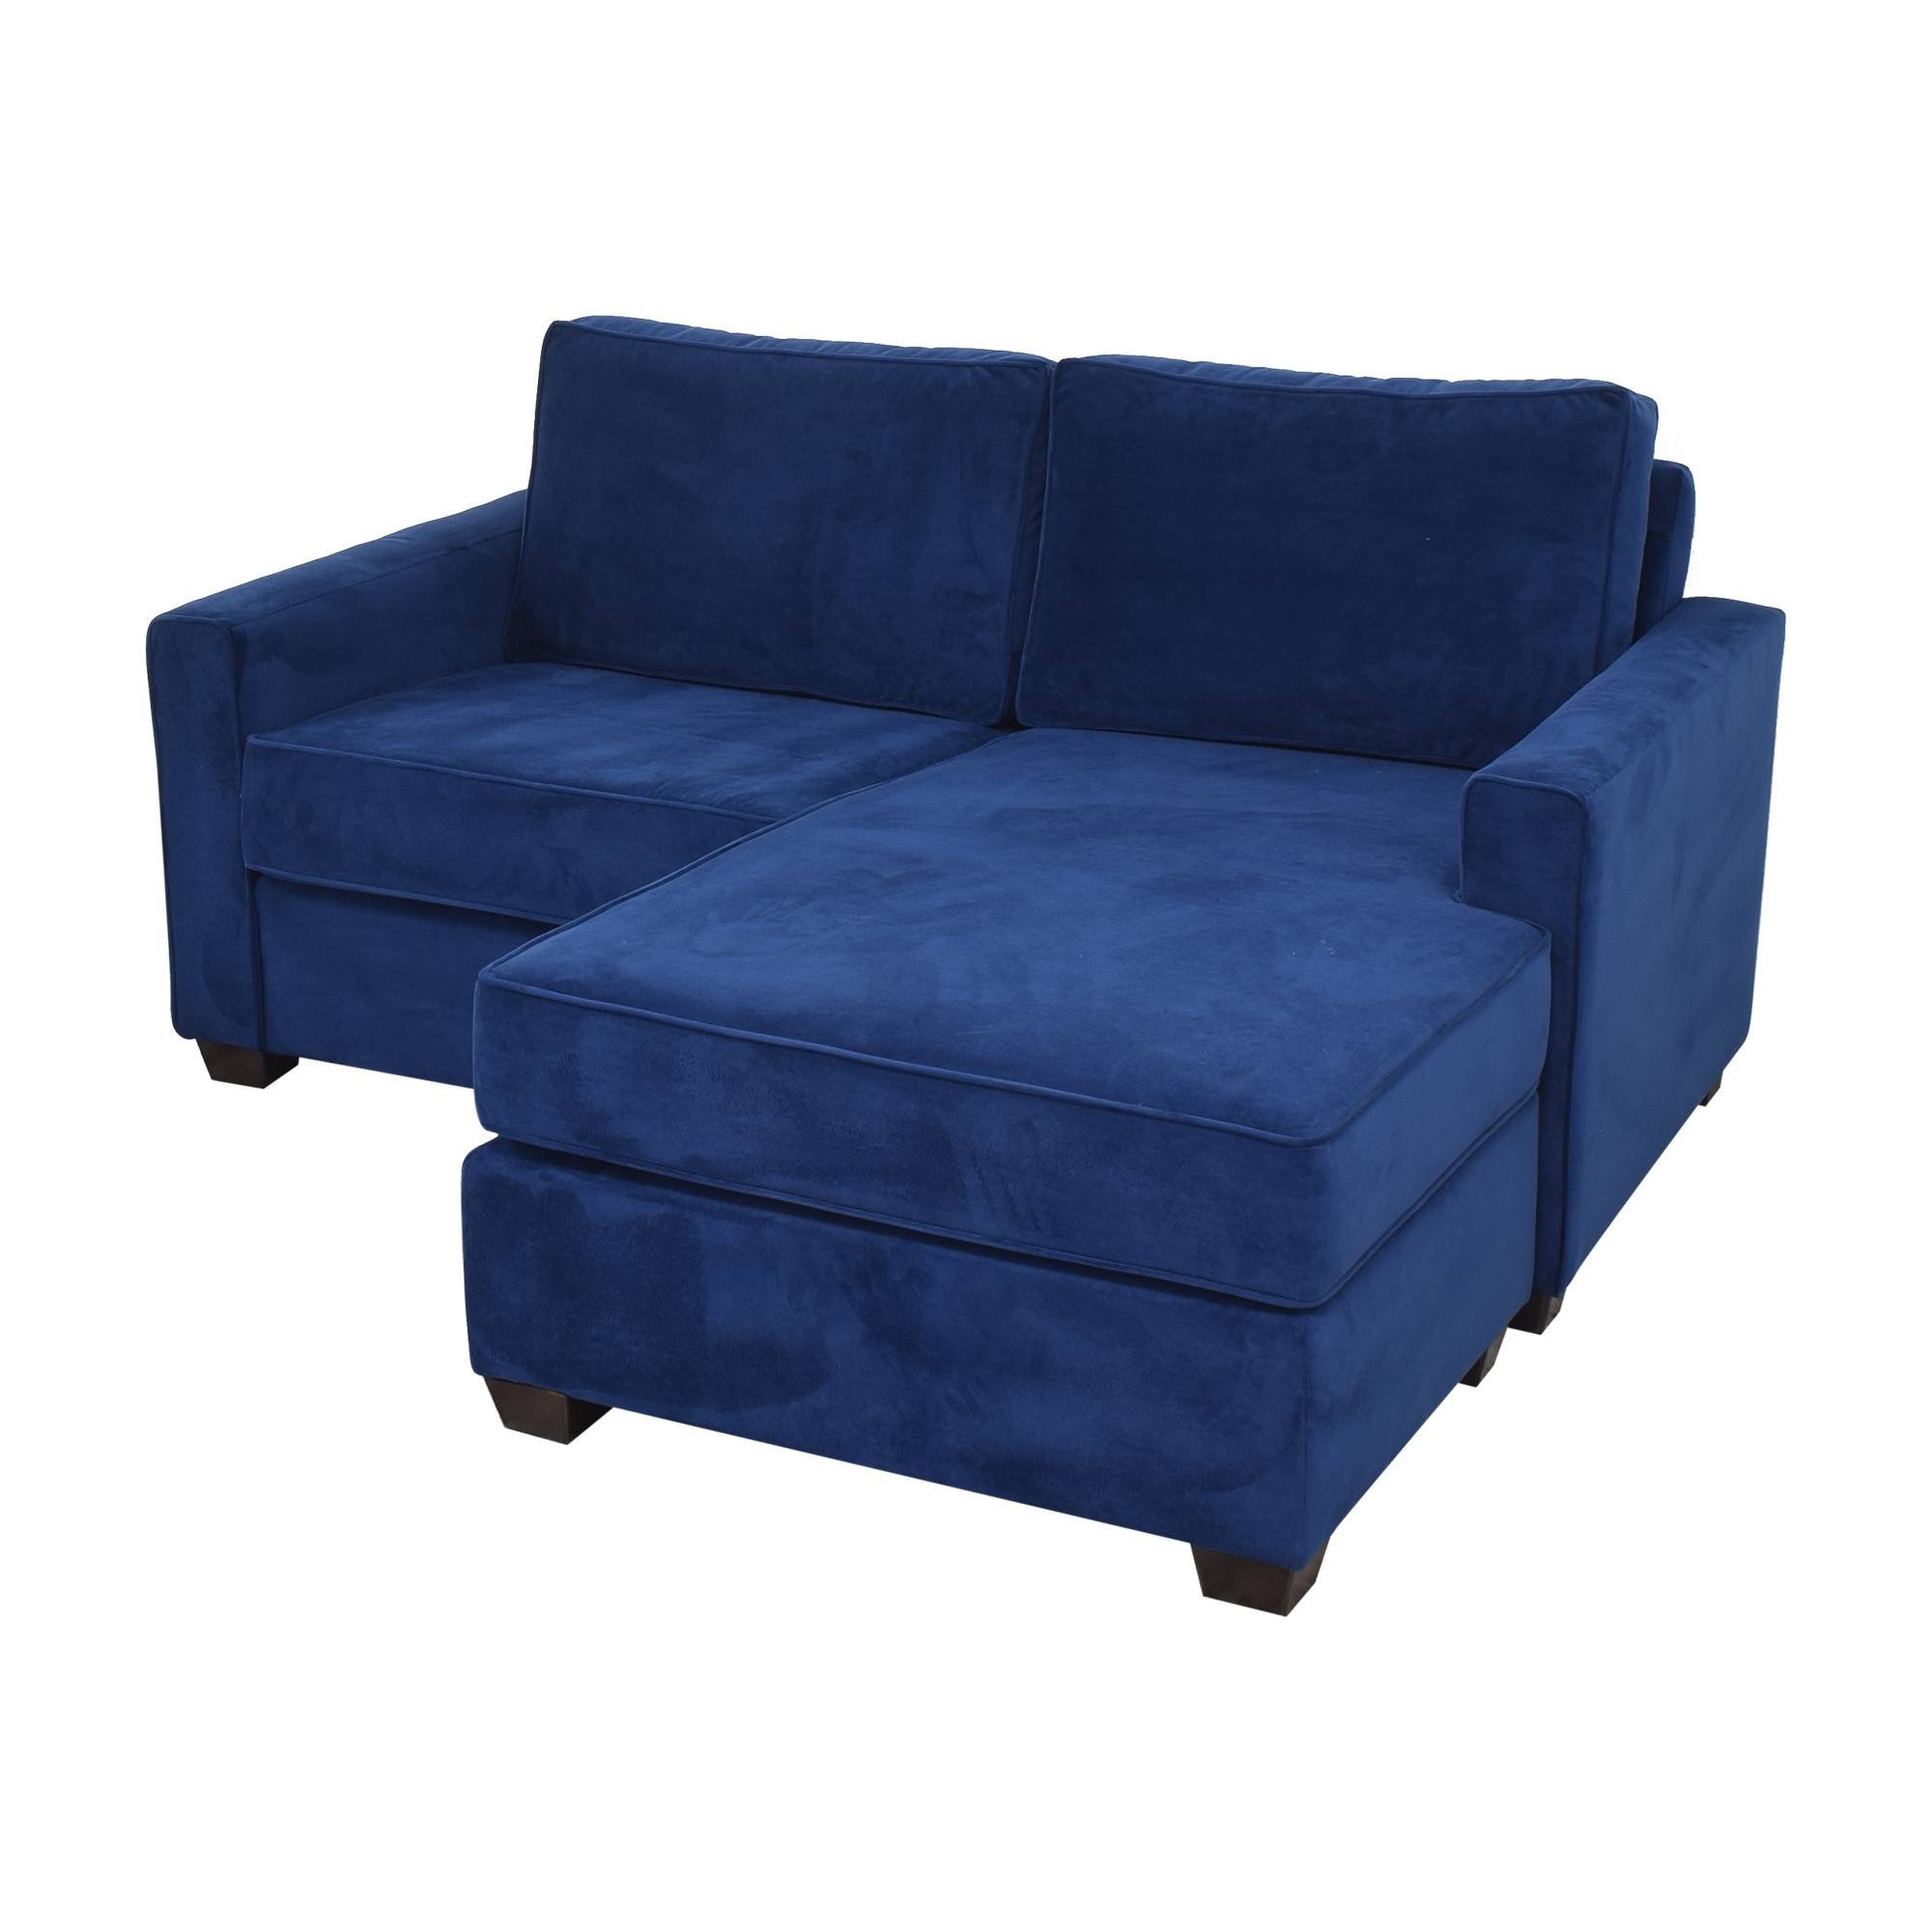 Pottery Barn Pottery Barn SoMa Fremont Square Arm Upholstered Sofa with Reversible Chaise Sectional pa